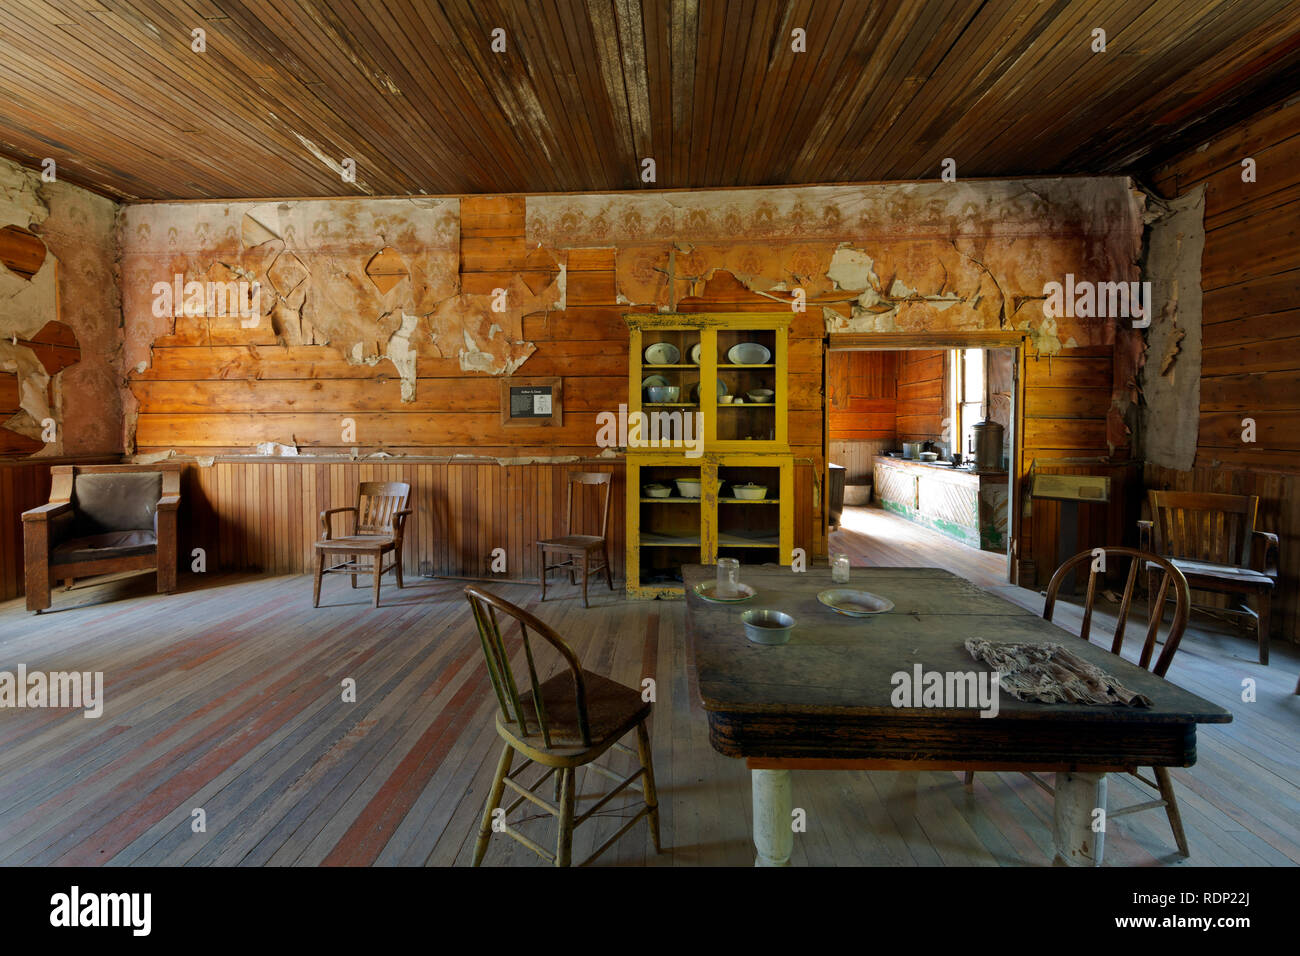 MT00282-00...MONTANA - Dining room at the J.K. Wells Hotel at the historic ghost town of Garnet which is run by the Bureau of Land Management. - Stock Image